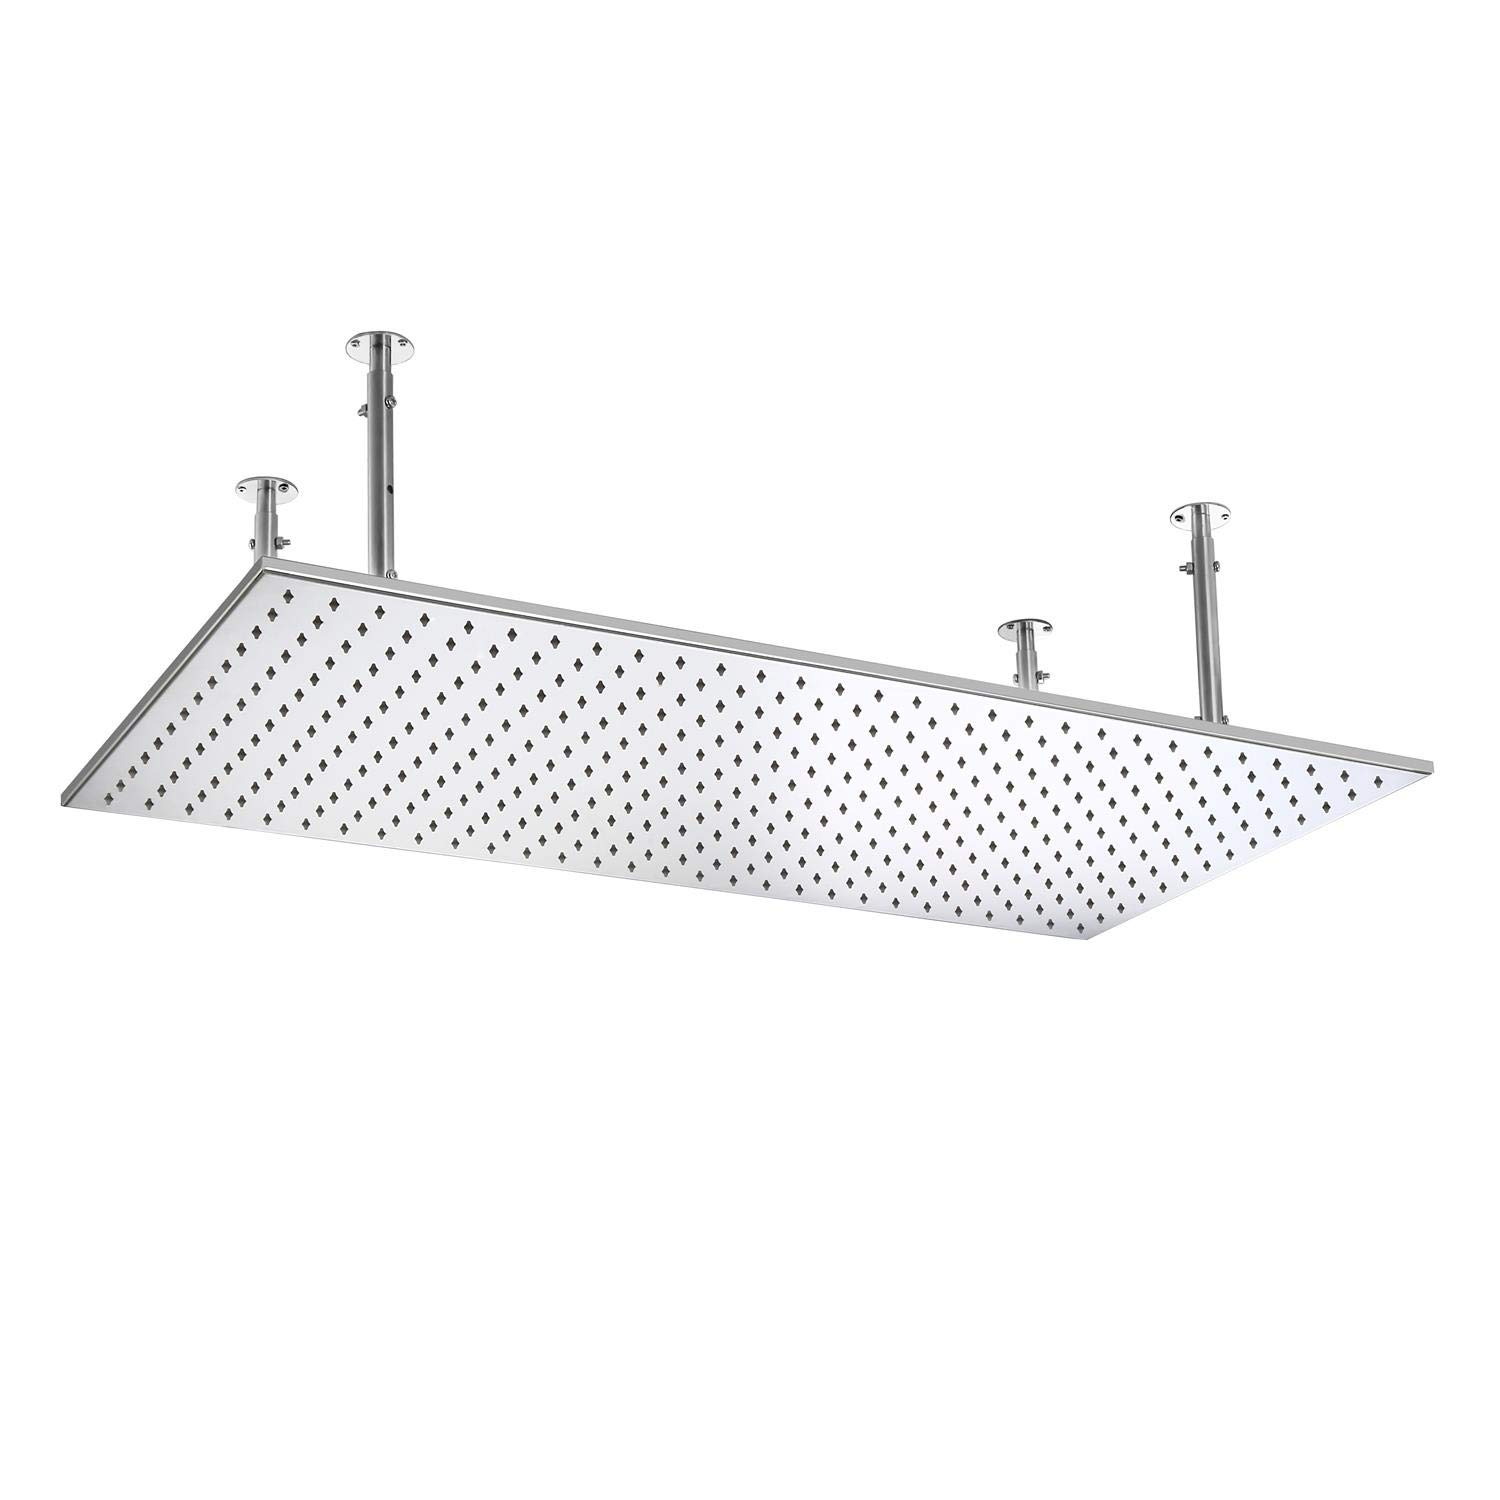 KunMai 20x40 LED Modern Luxurious Stainless Steel Rectangle Ceiling Mounted Rain Shower Head in Brushed Nickel with LED, Brushed Nickel